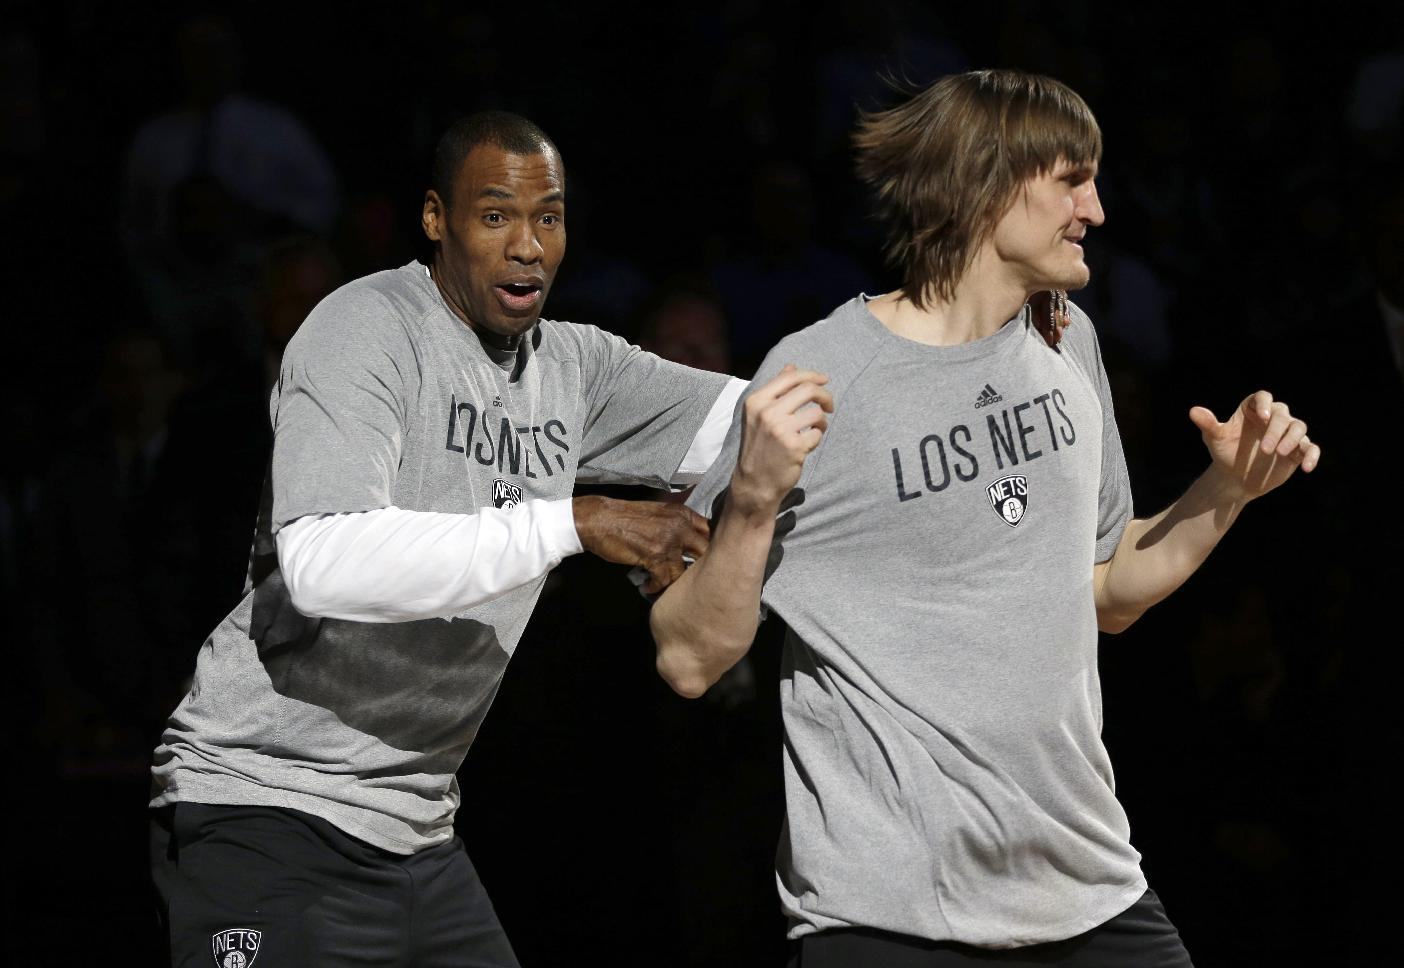 Brooklyn Nets' Jason Collins, left, and Andrei Kirilenko join the huddle before the start of the NBA basketball game against the Chicago Bulls, Monday, March 3, 2014, in New York